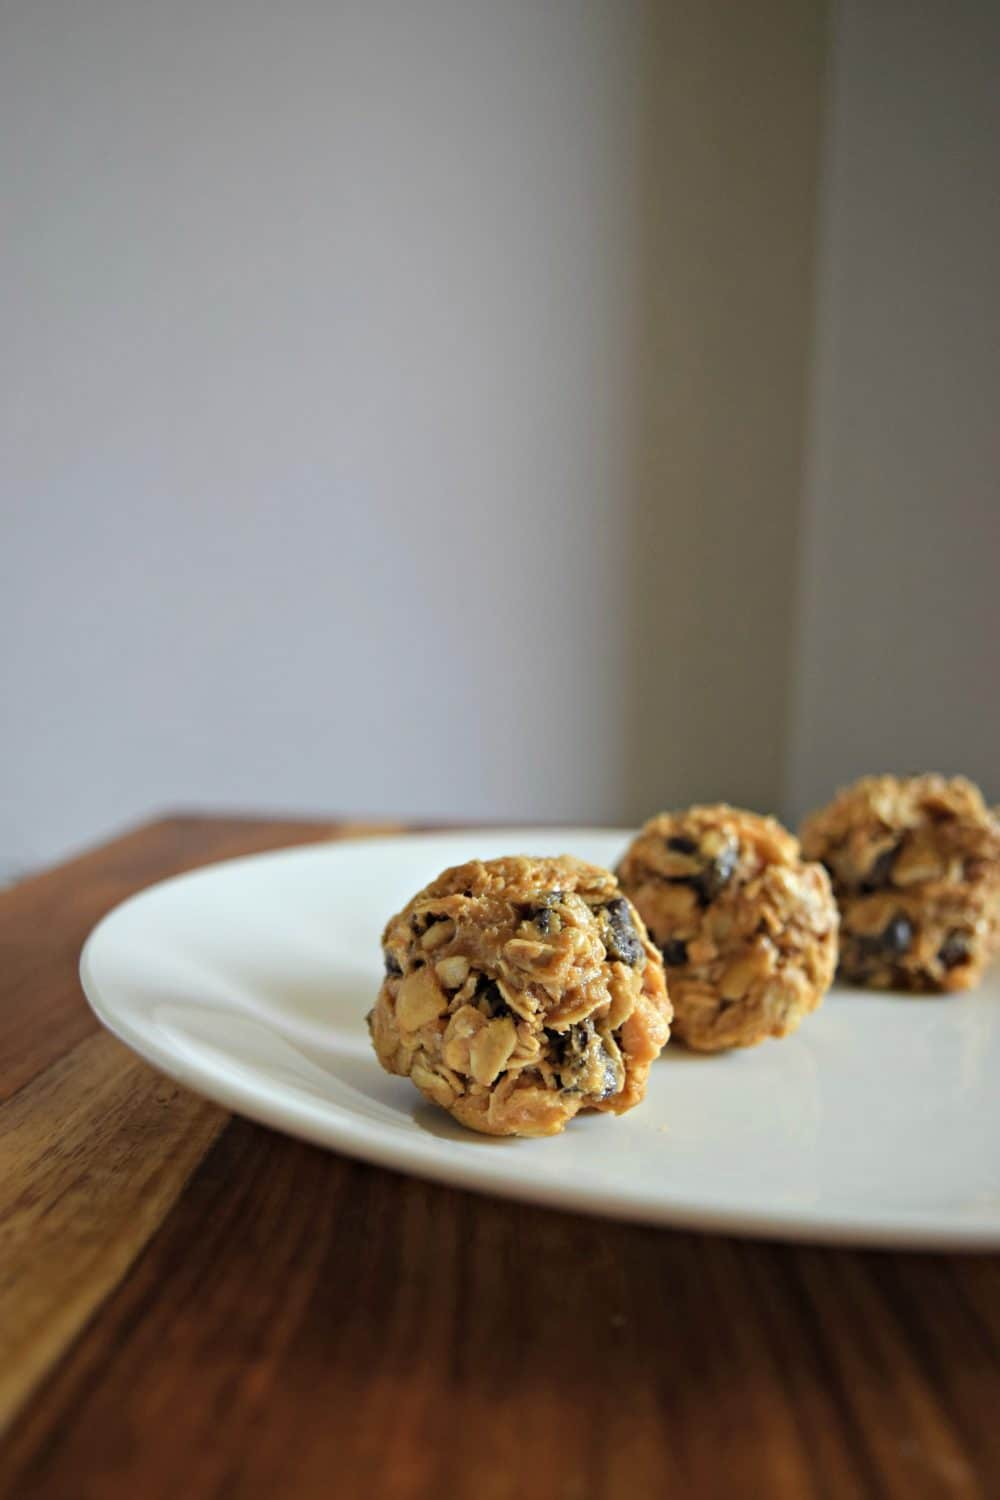 No Bake and super easy to make yourself. Delicious peanut butter, chocolate chips, and honey! Click to see recipe.